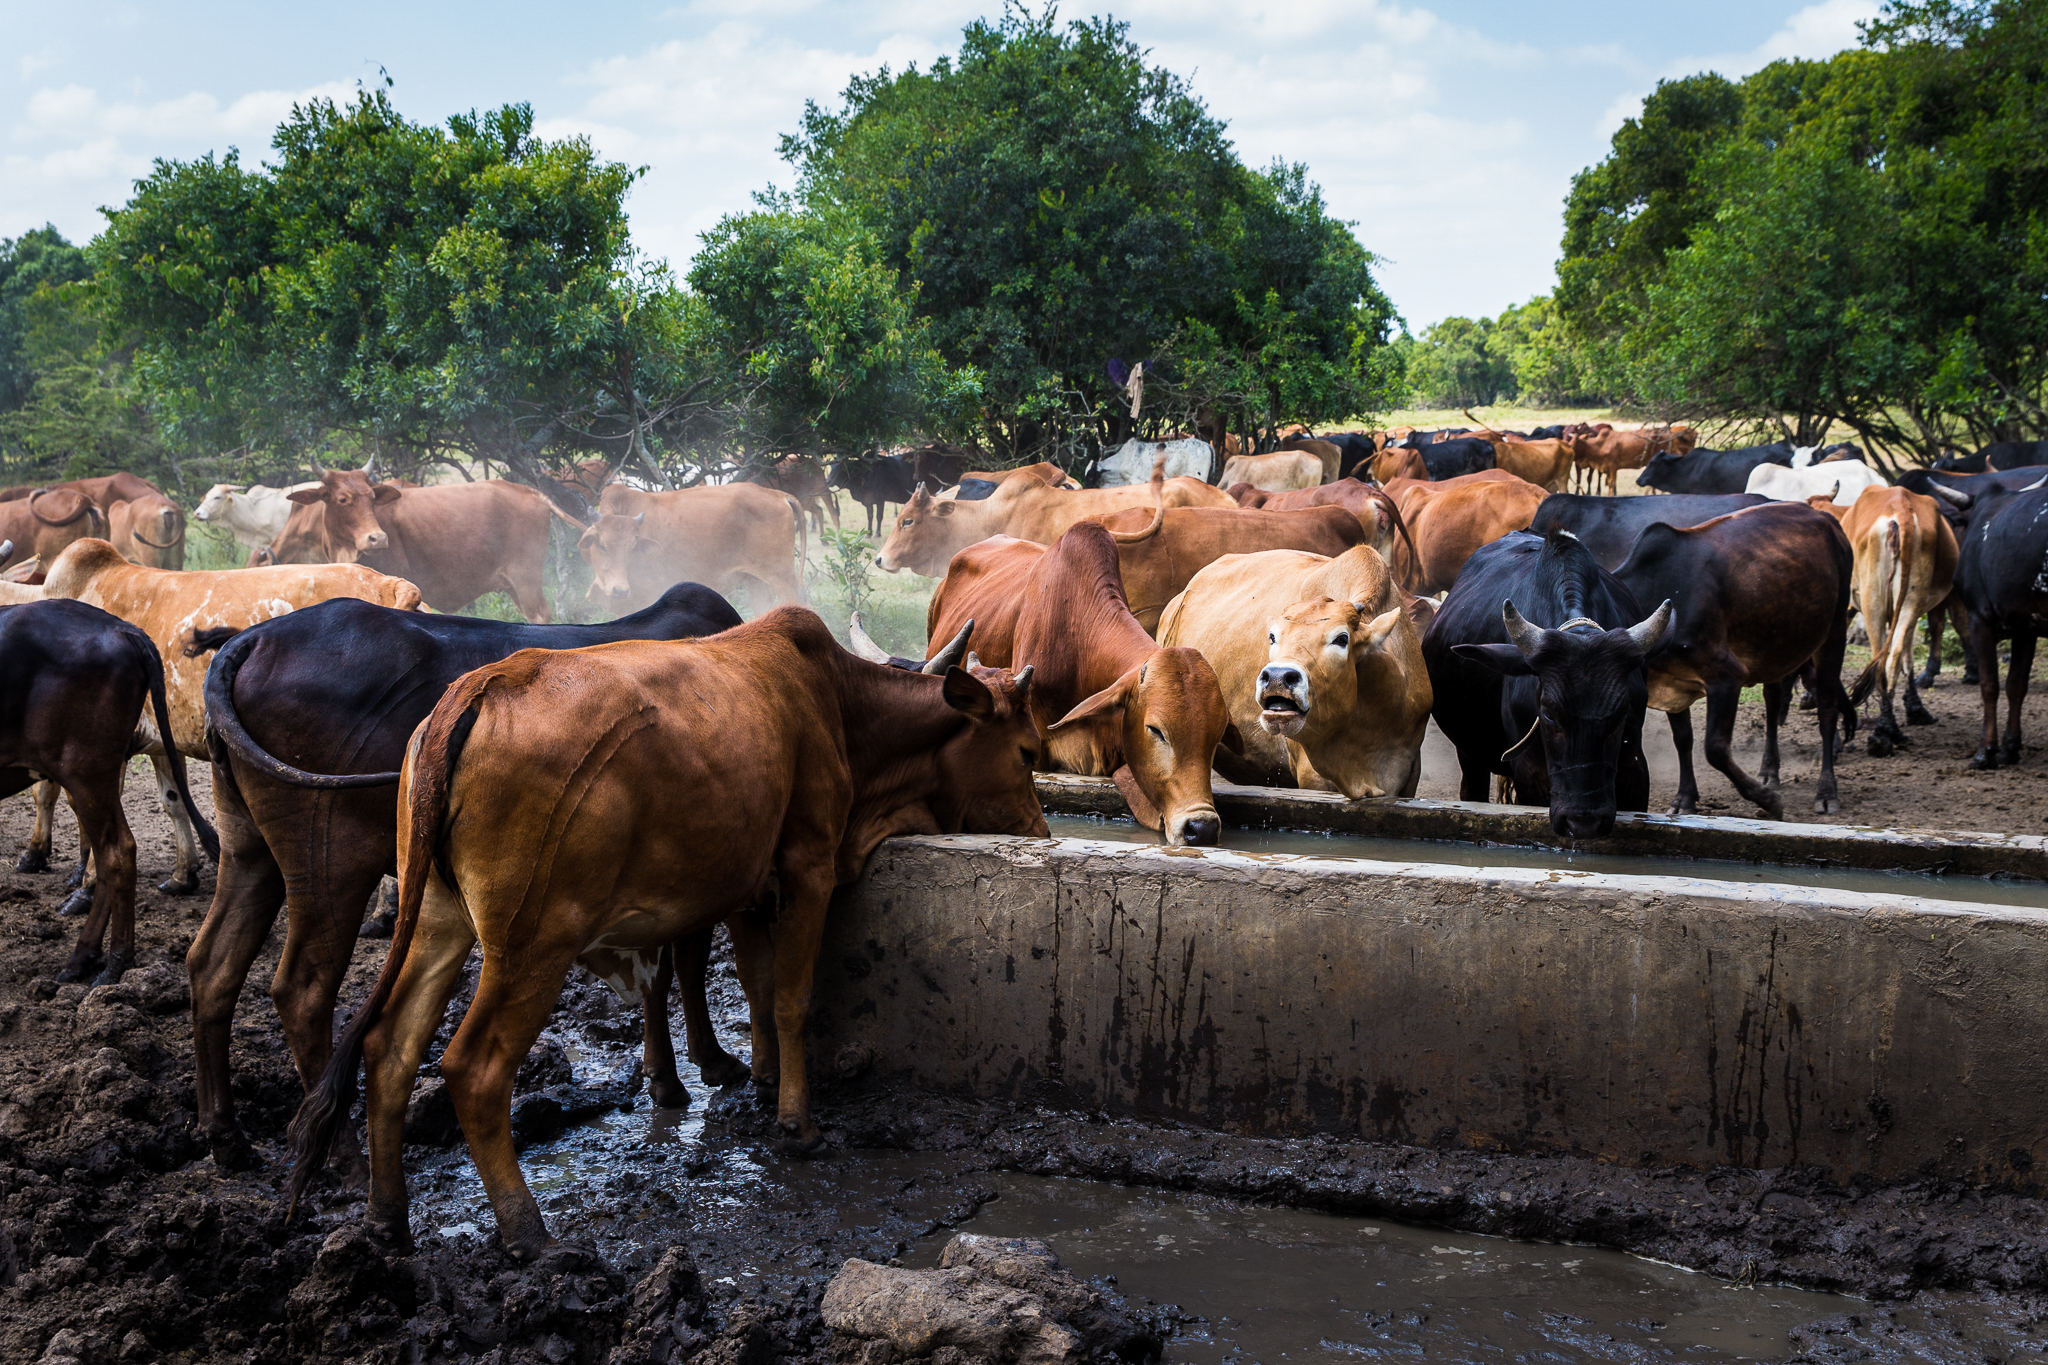 This cattle trough stands just a few kilometers outside the Masai Mara National Reserve. For the Maasai, cattle are not merely symbolic of status and wealth—they are often used as a form of currency.